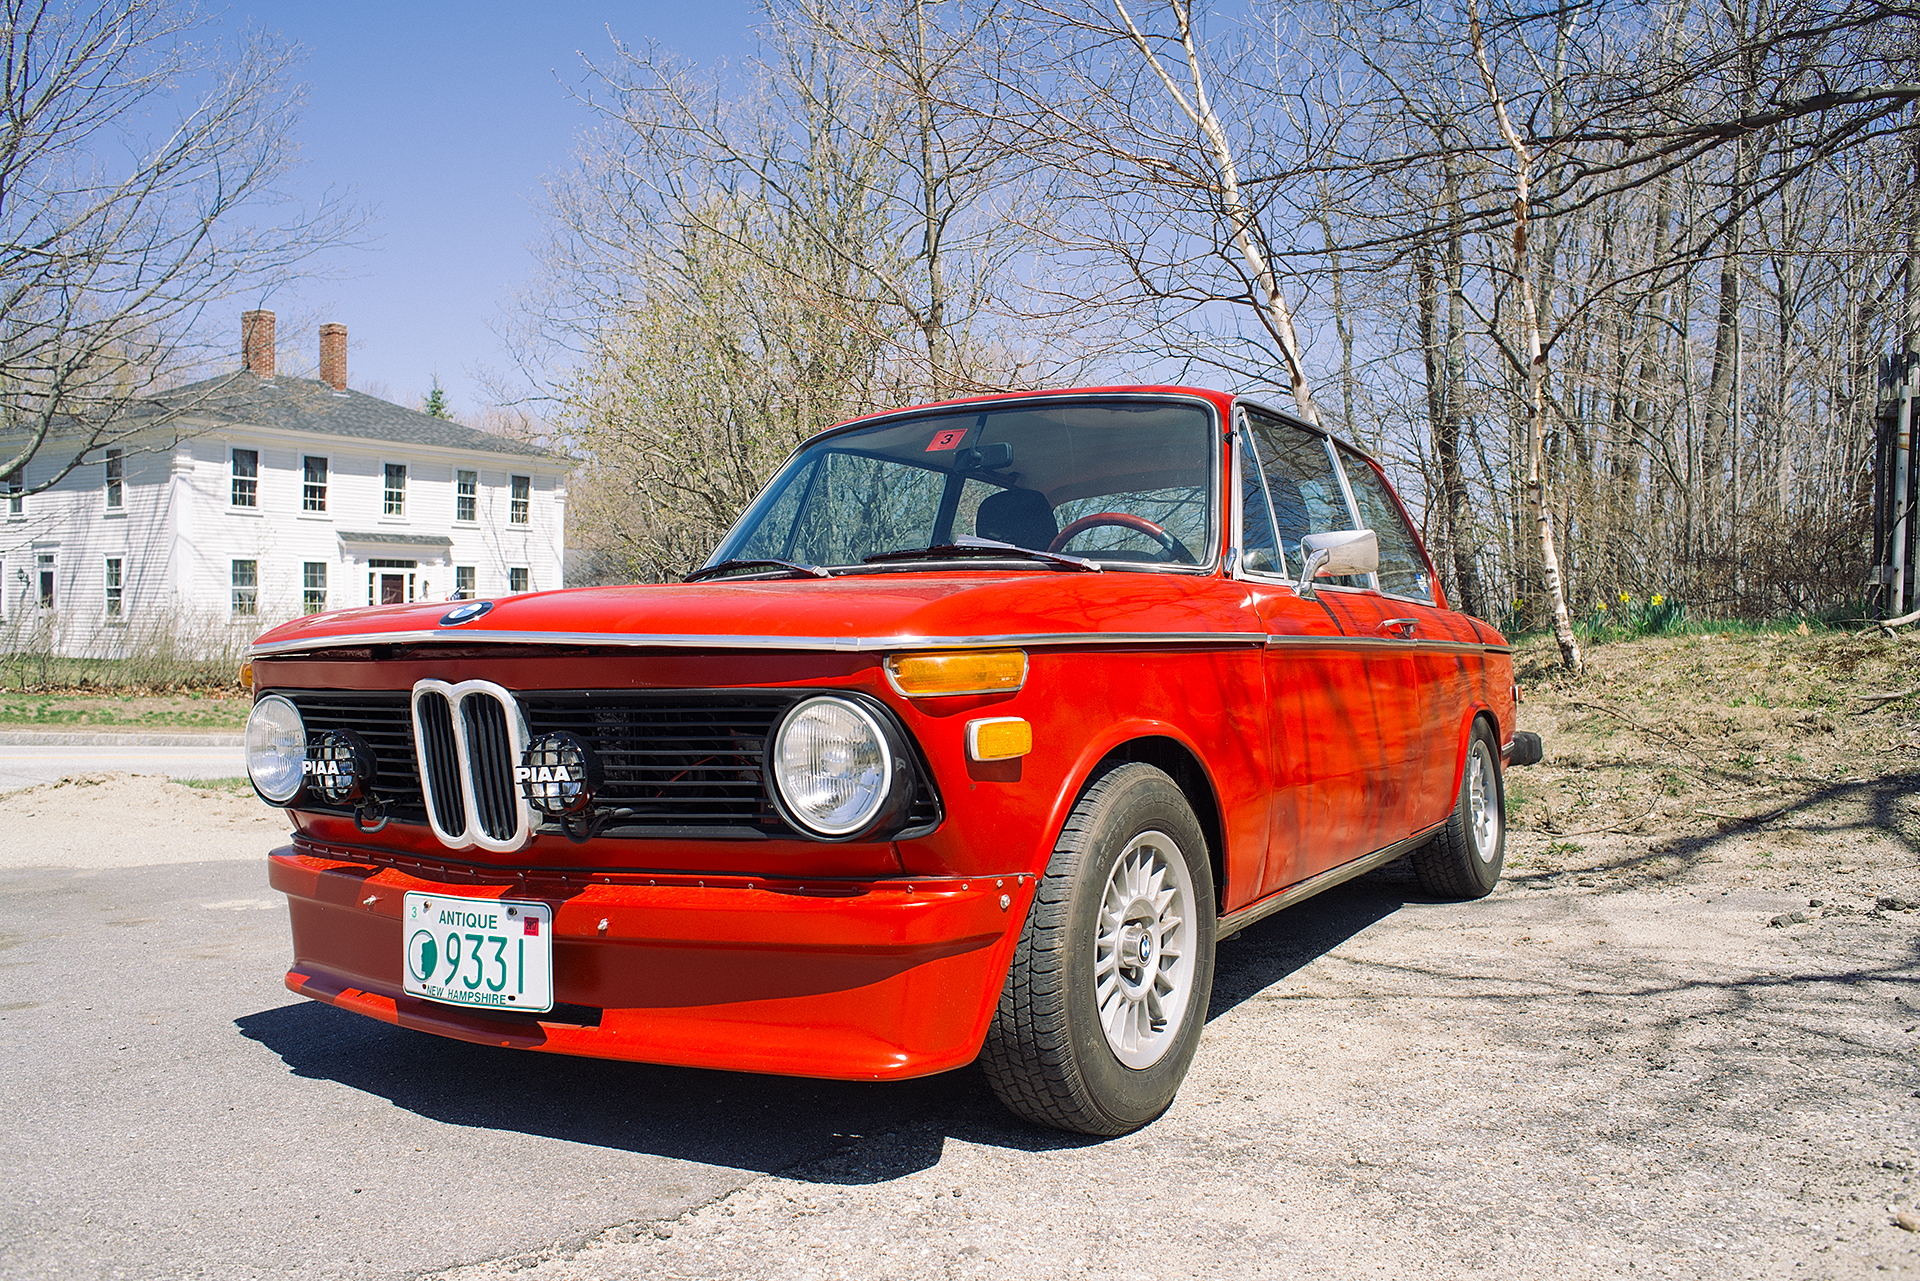 Looking down the driver's side of a restored Red BMW 2002